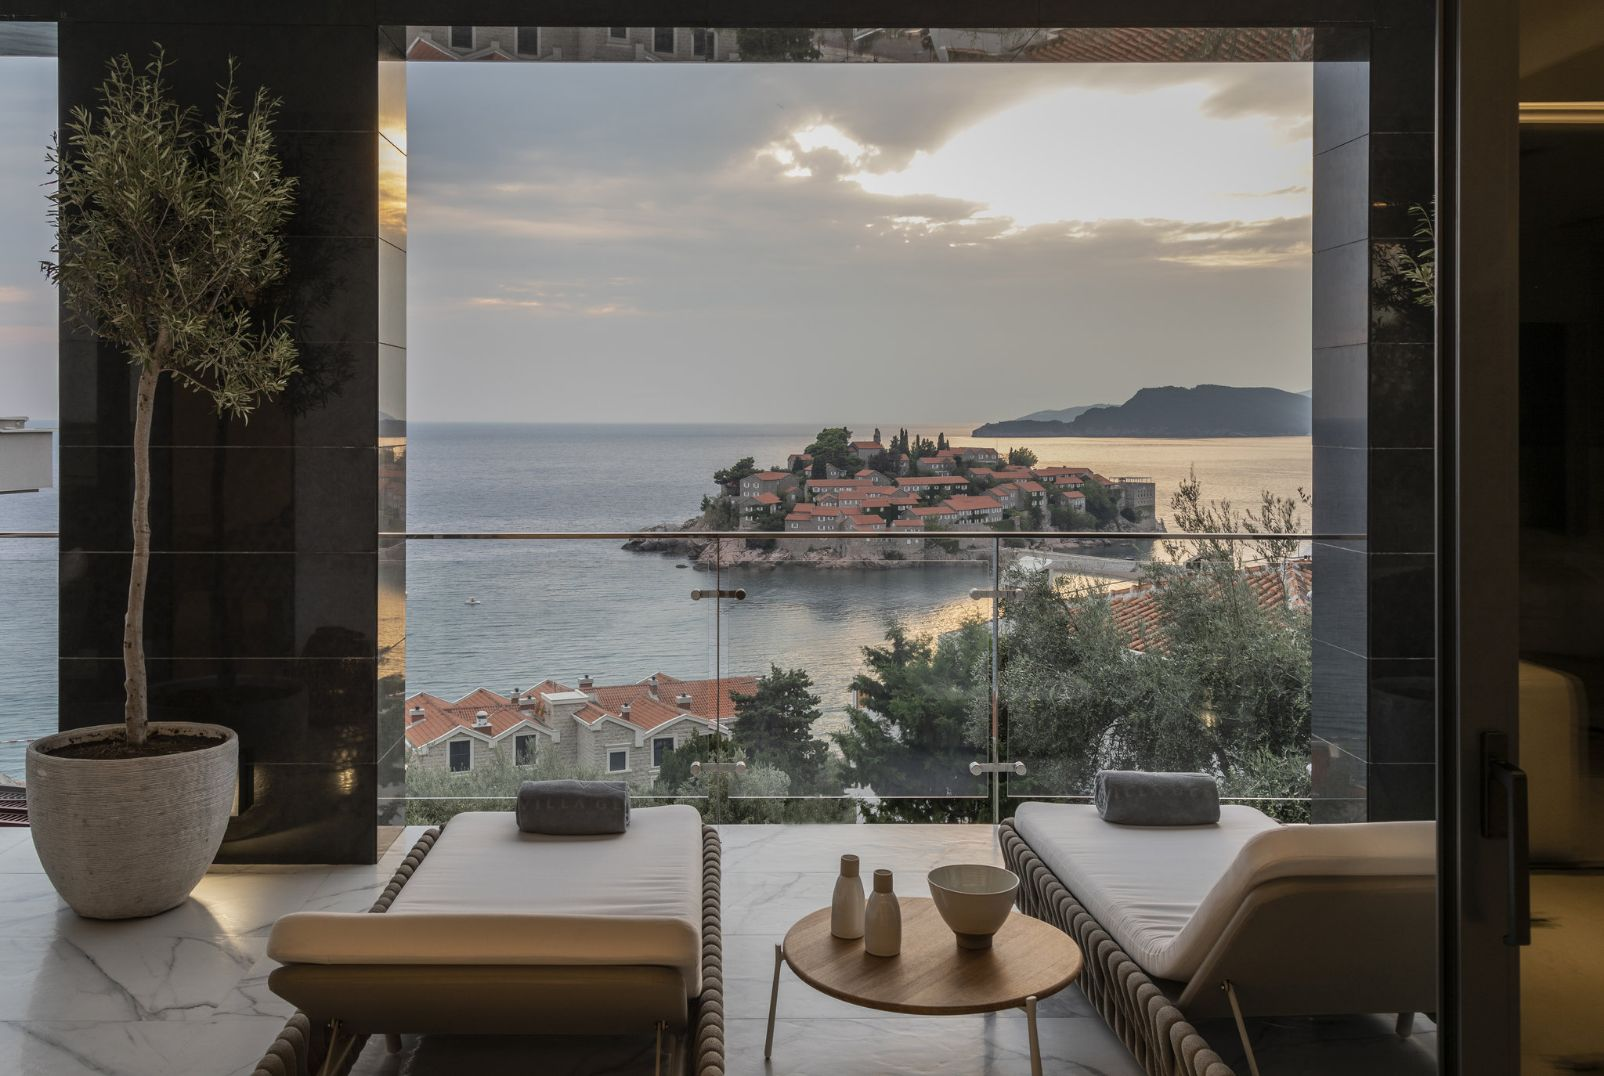 From Montenegro to The Hamptons: 5 Luxurious Hotels to Start Dreaming About